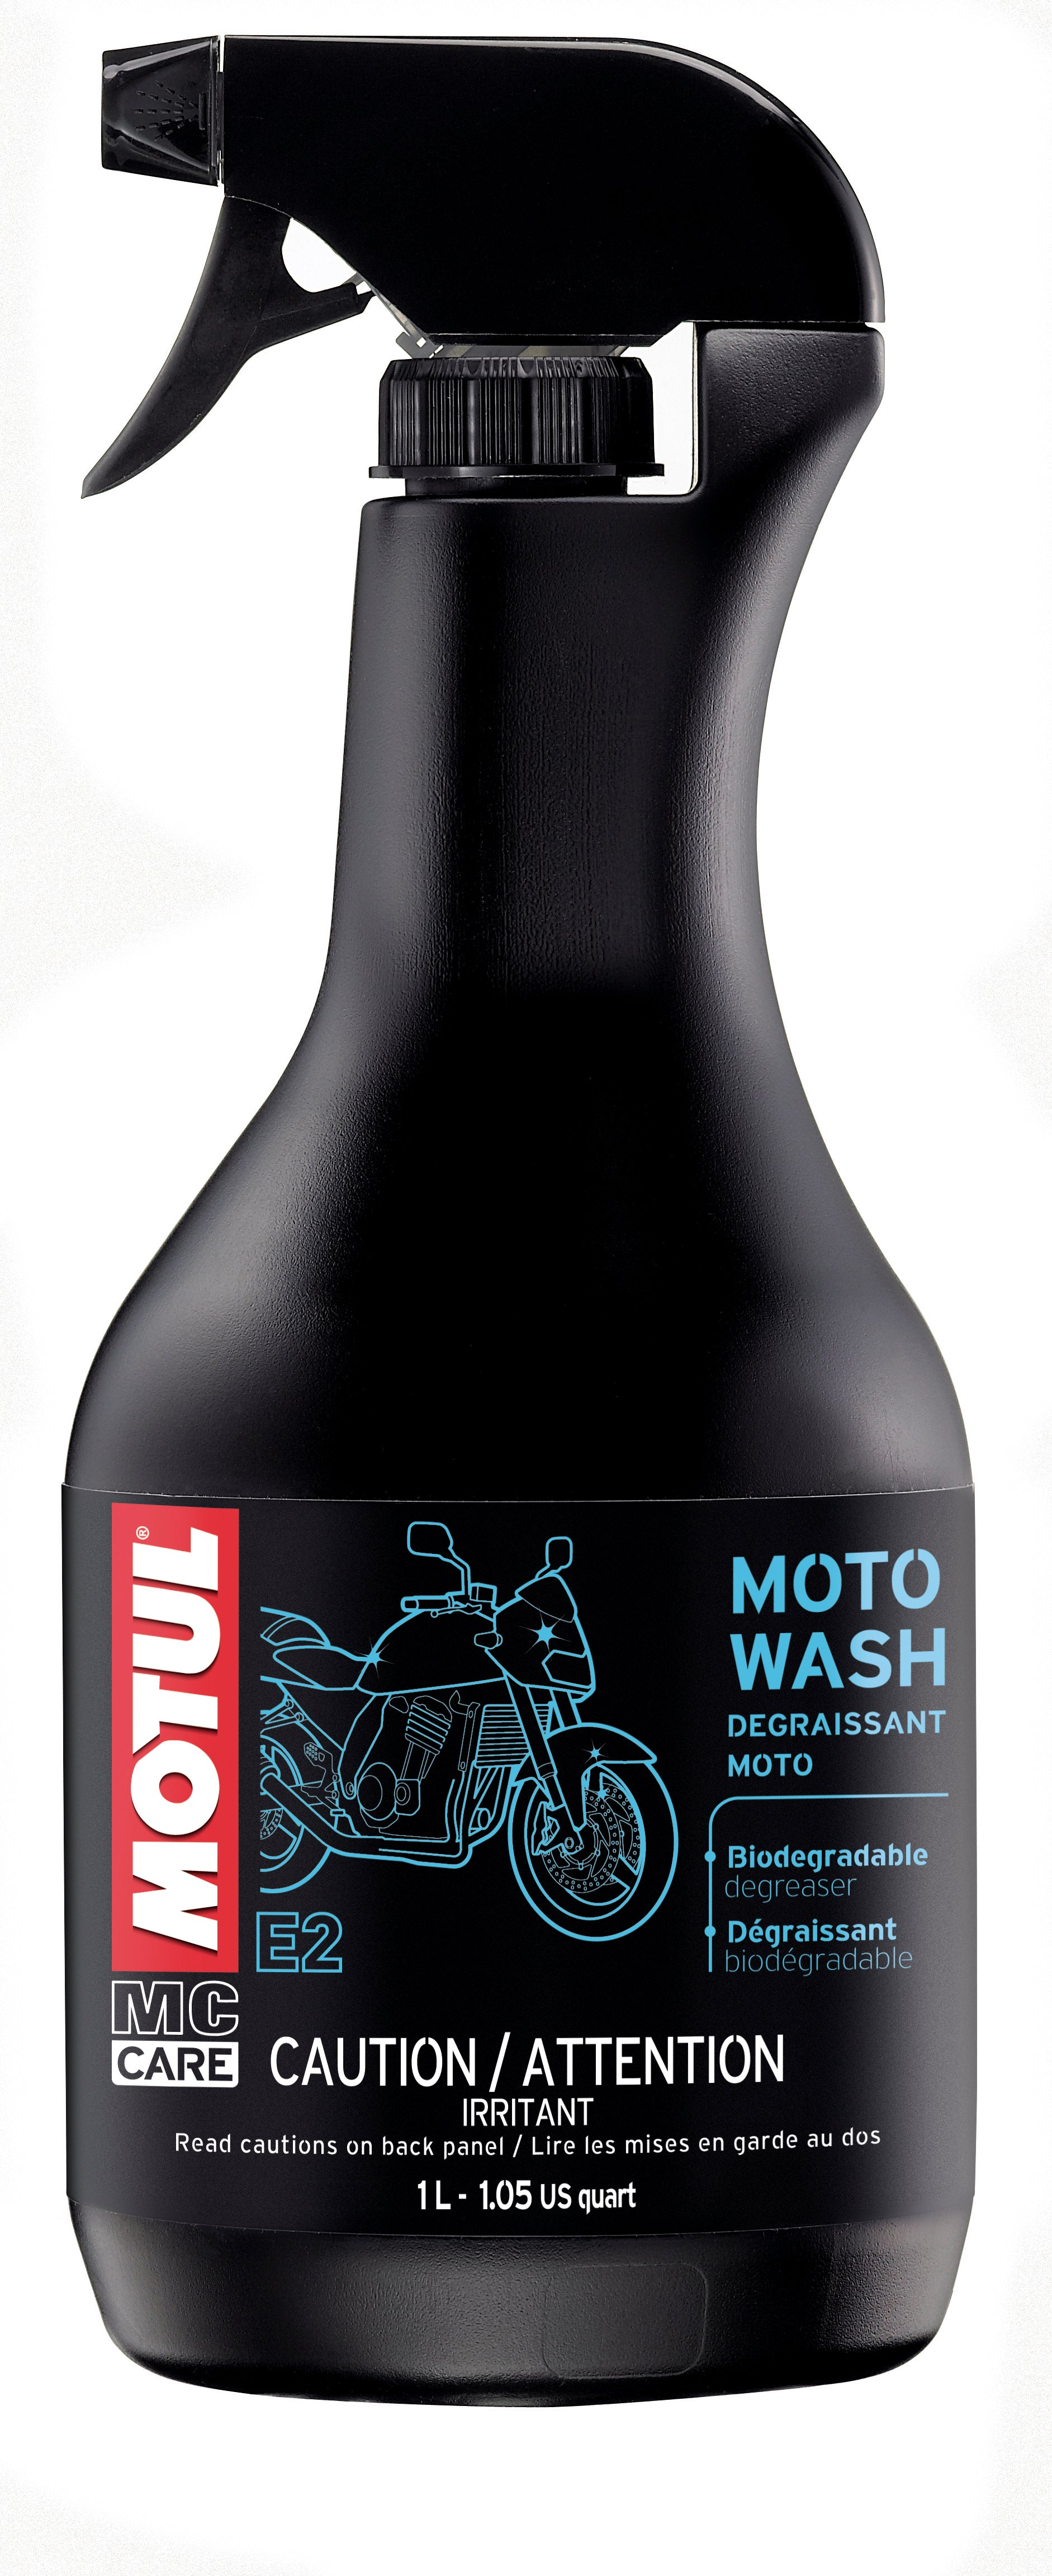 MOTUL MOTOWASH BIODEGRADABLE CLEANER DE-GREASER